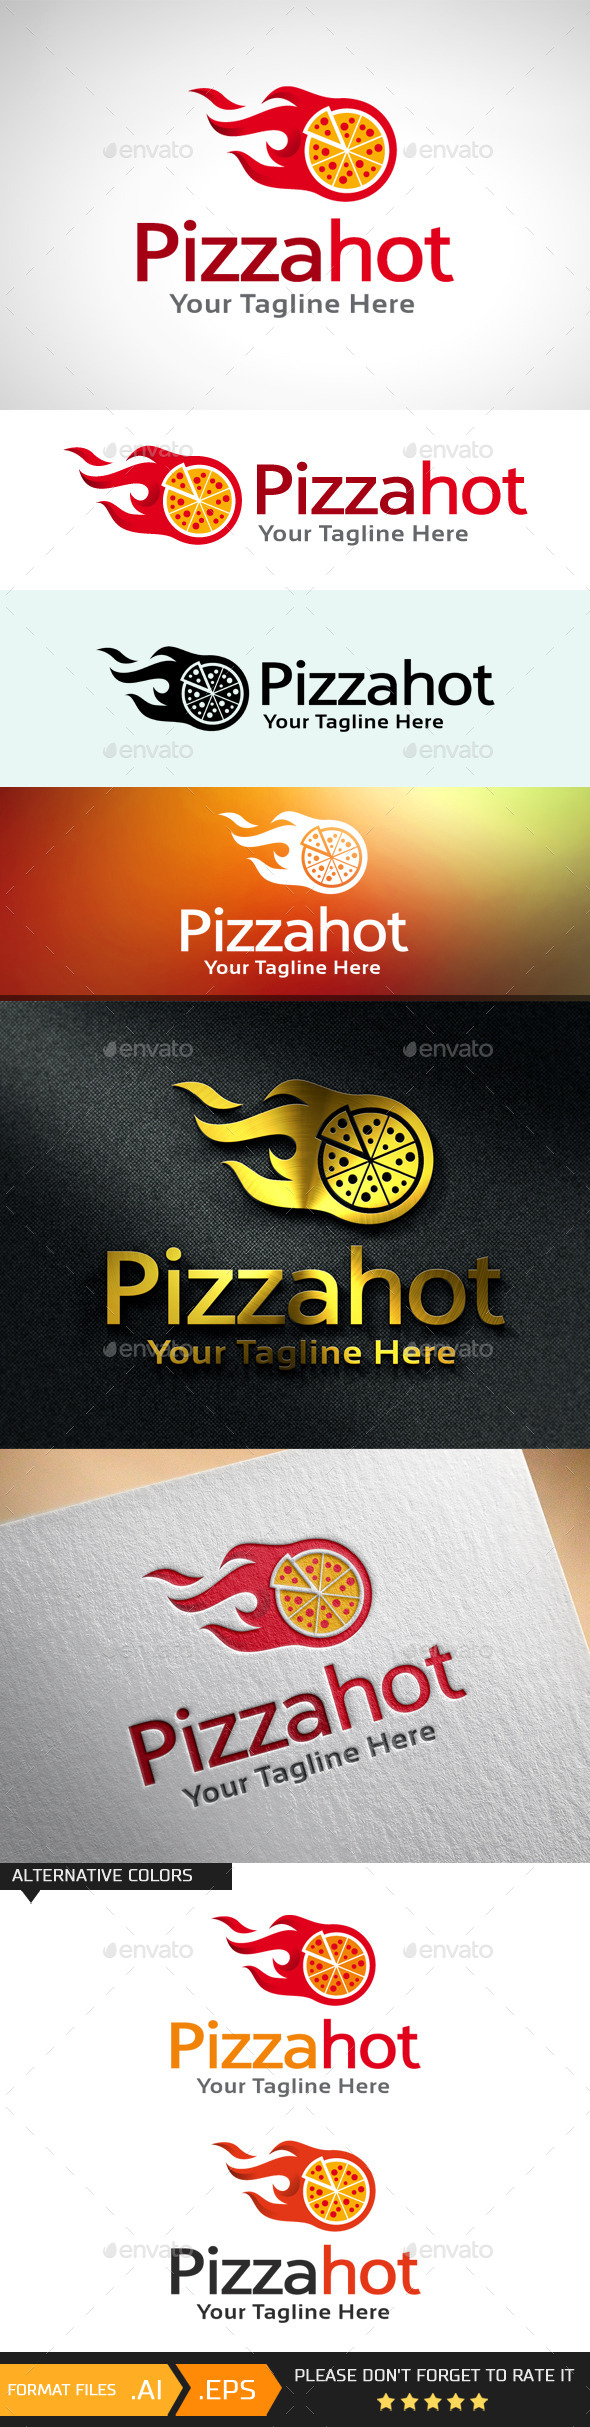 Pizza Hot Logo Template - Food Logo Templates